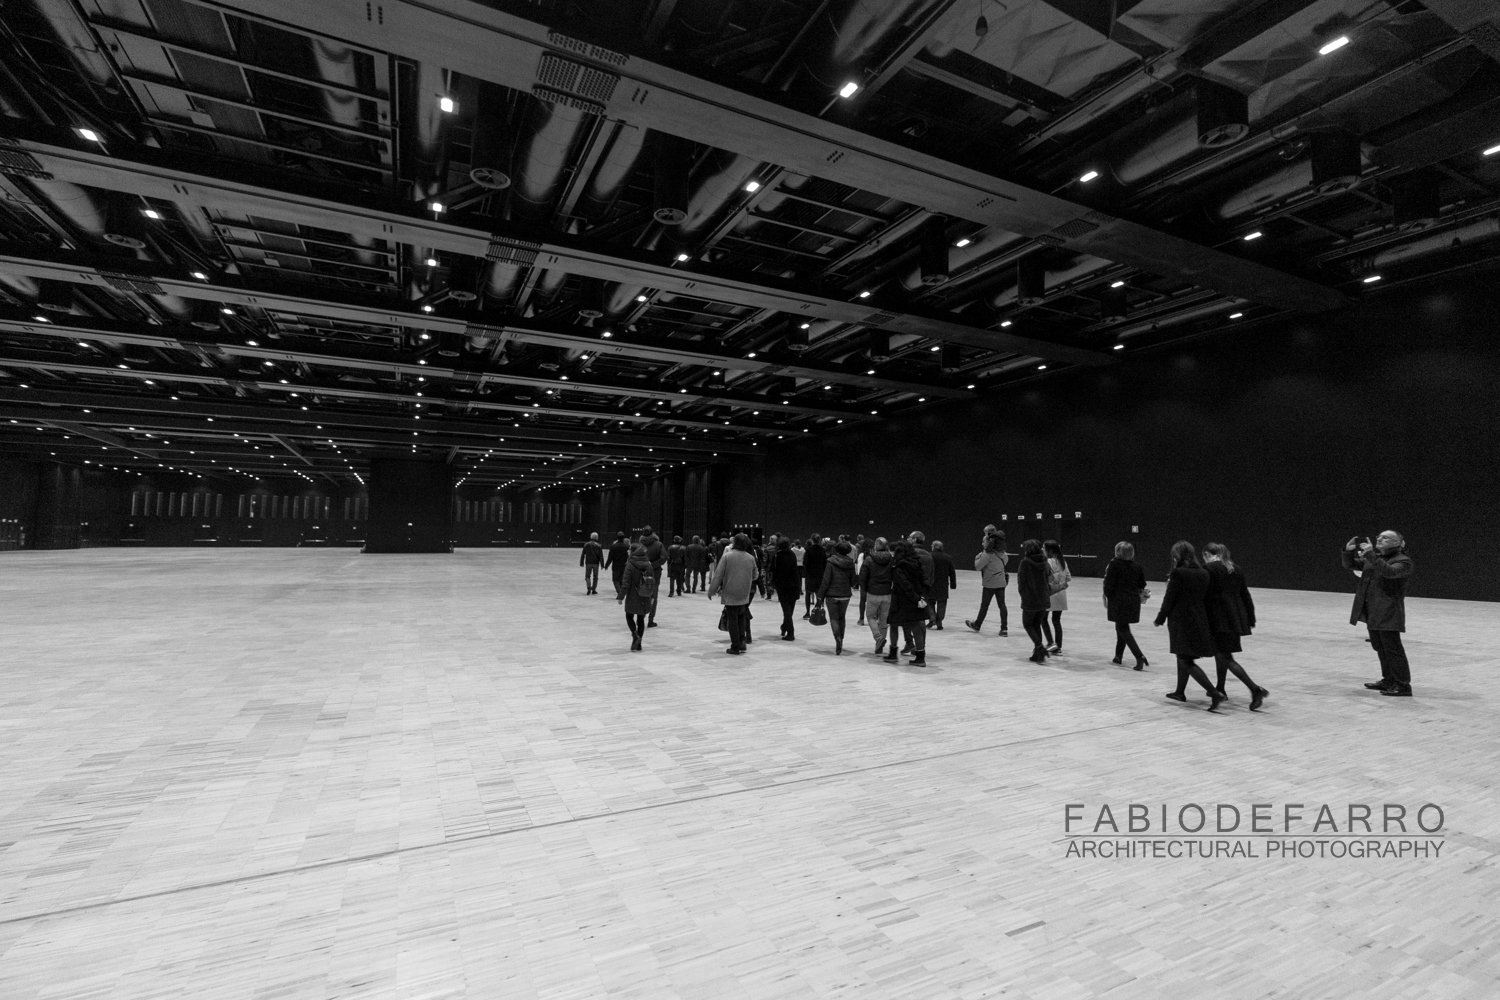 Convention Center - Rome The Cloud - Fuxas Studio - multifunctional exhibition facility